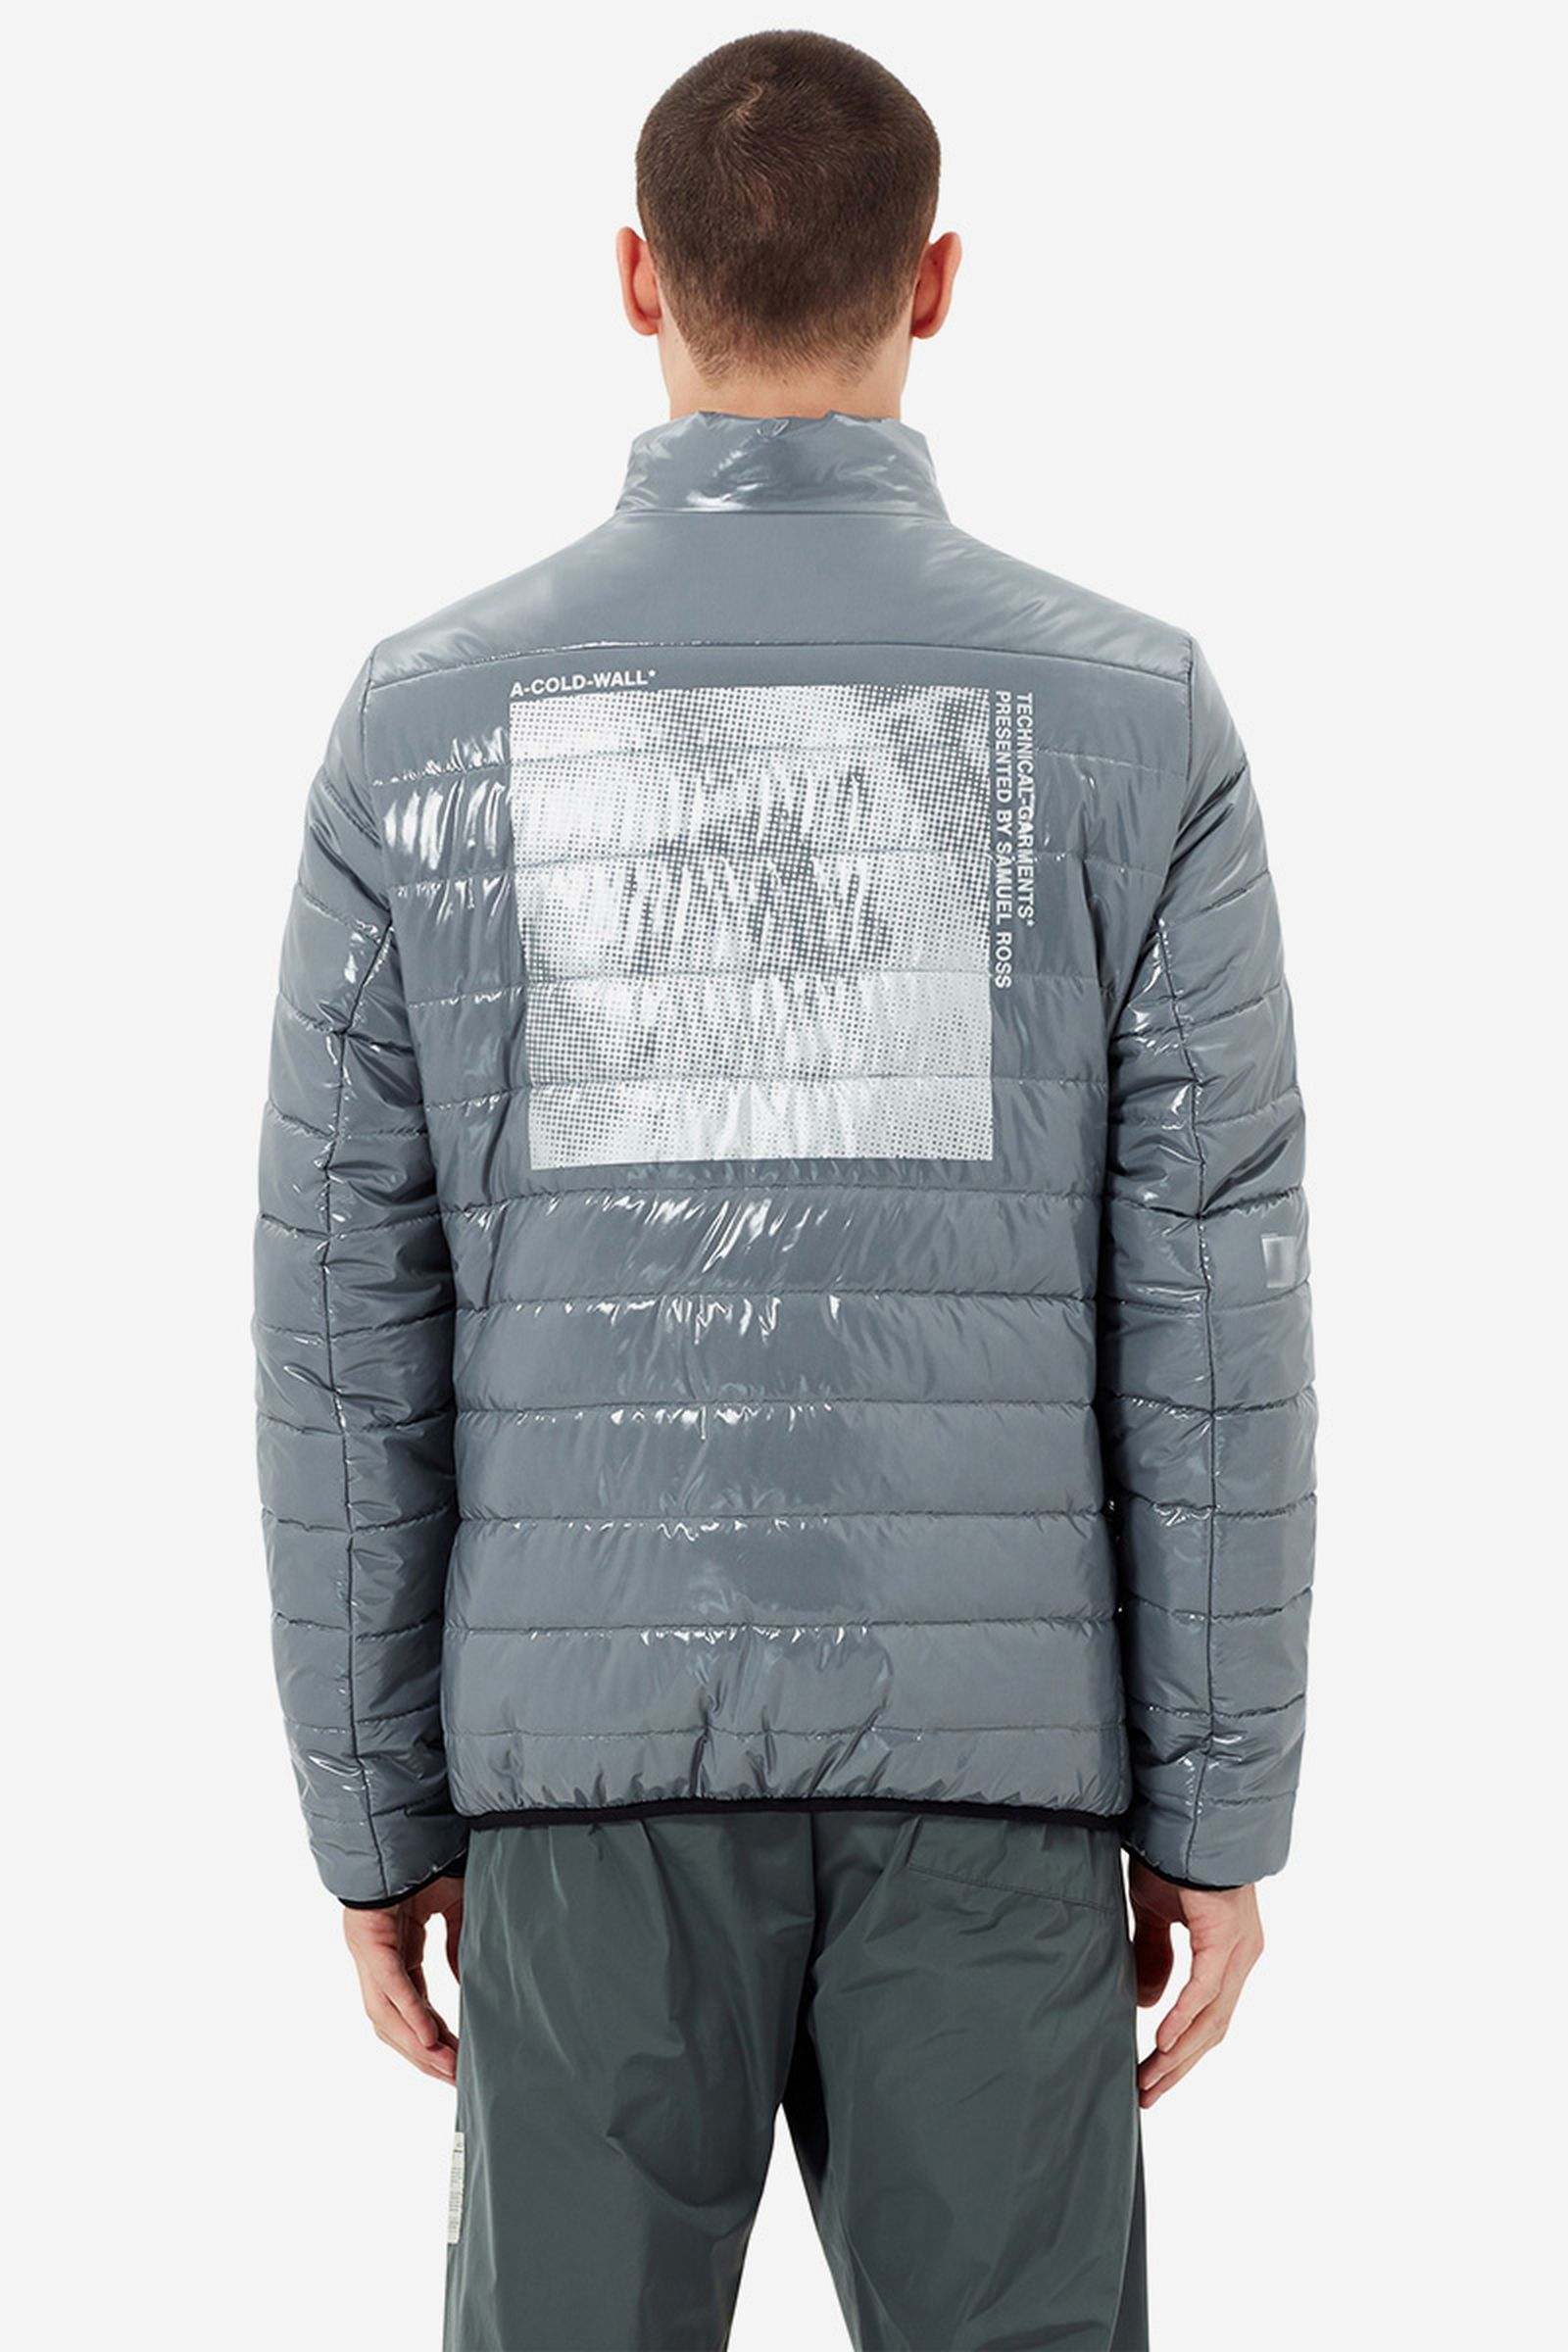 a cold wall aw18 glare collection